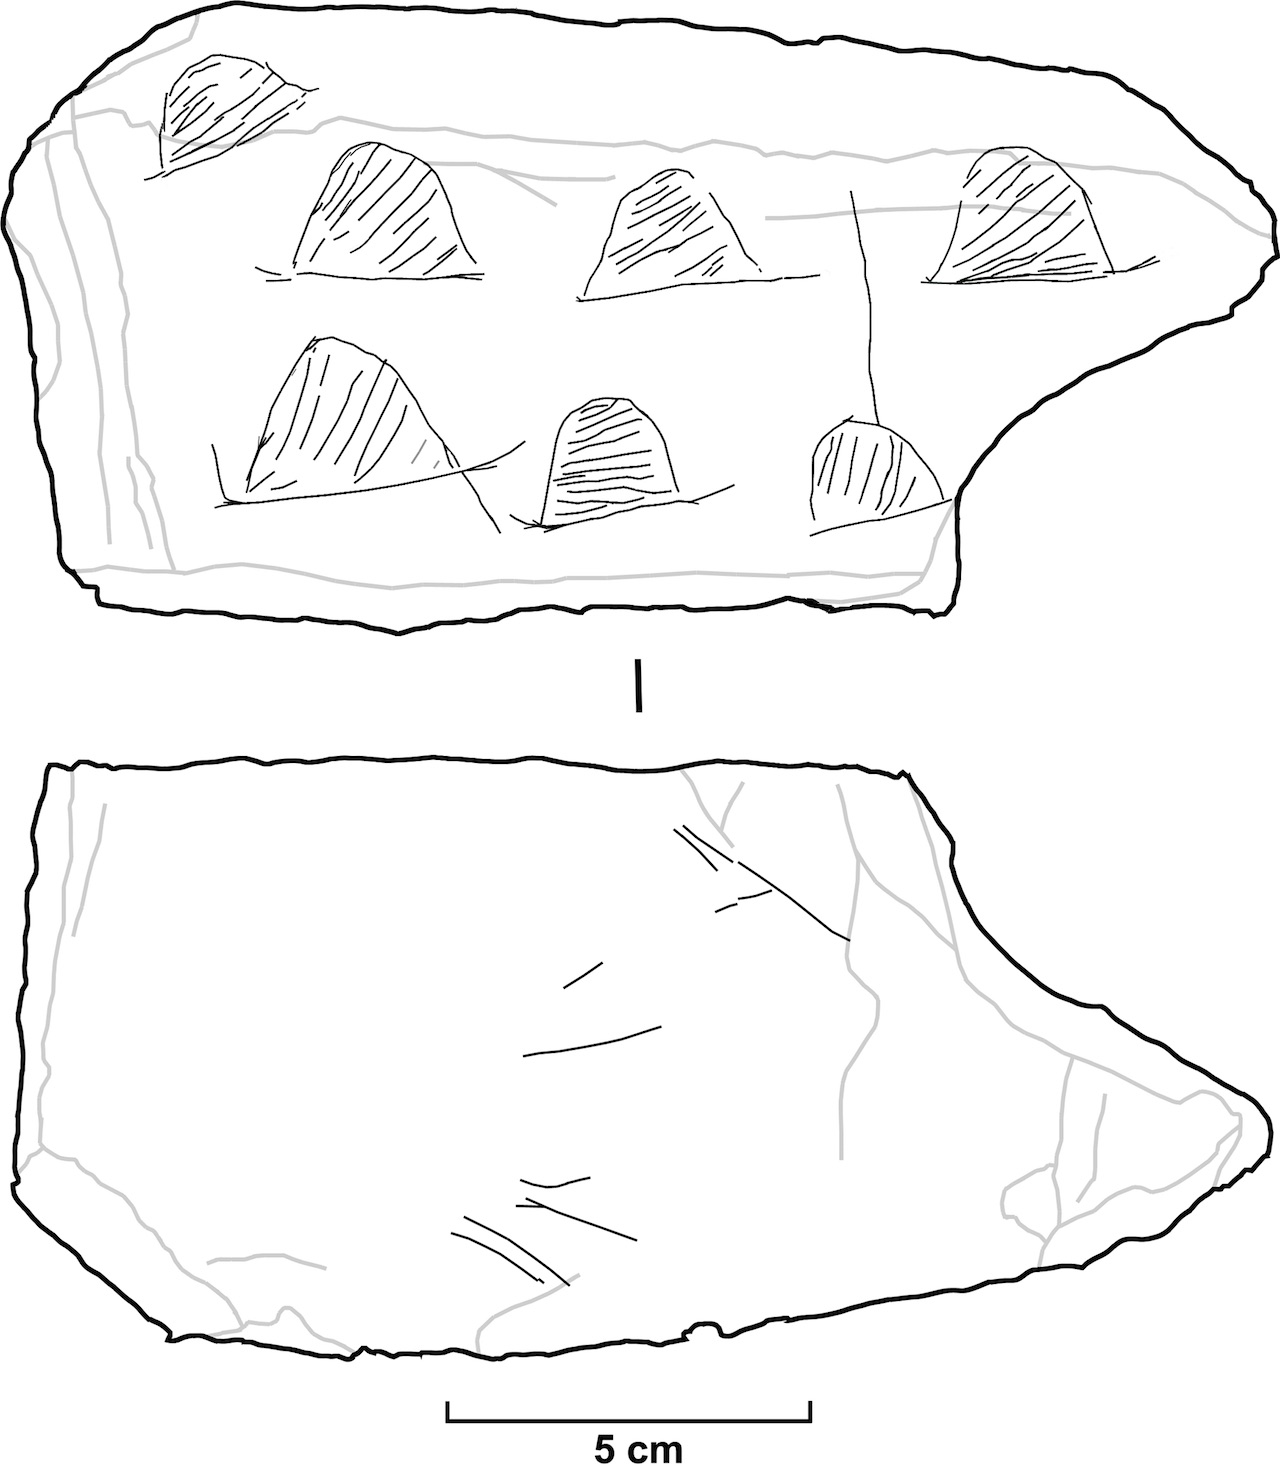 Drawing of the engraved slab.